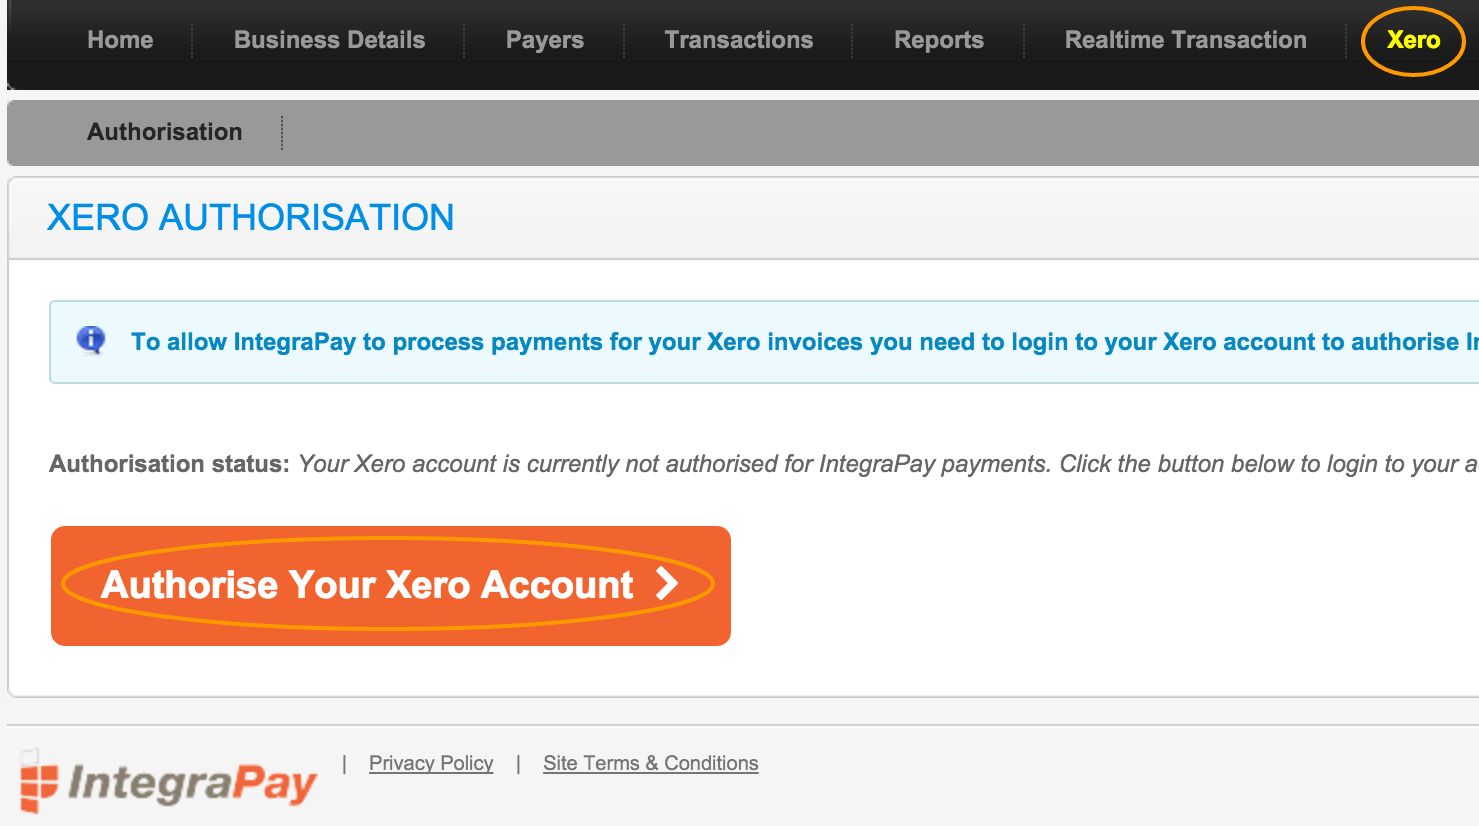 IntegraPay Authorise your Xero Account for Online Payments